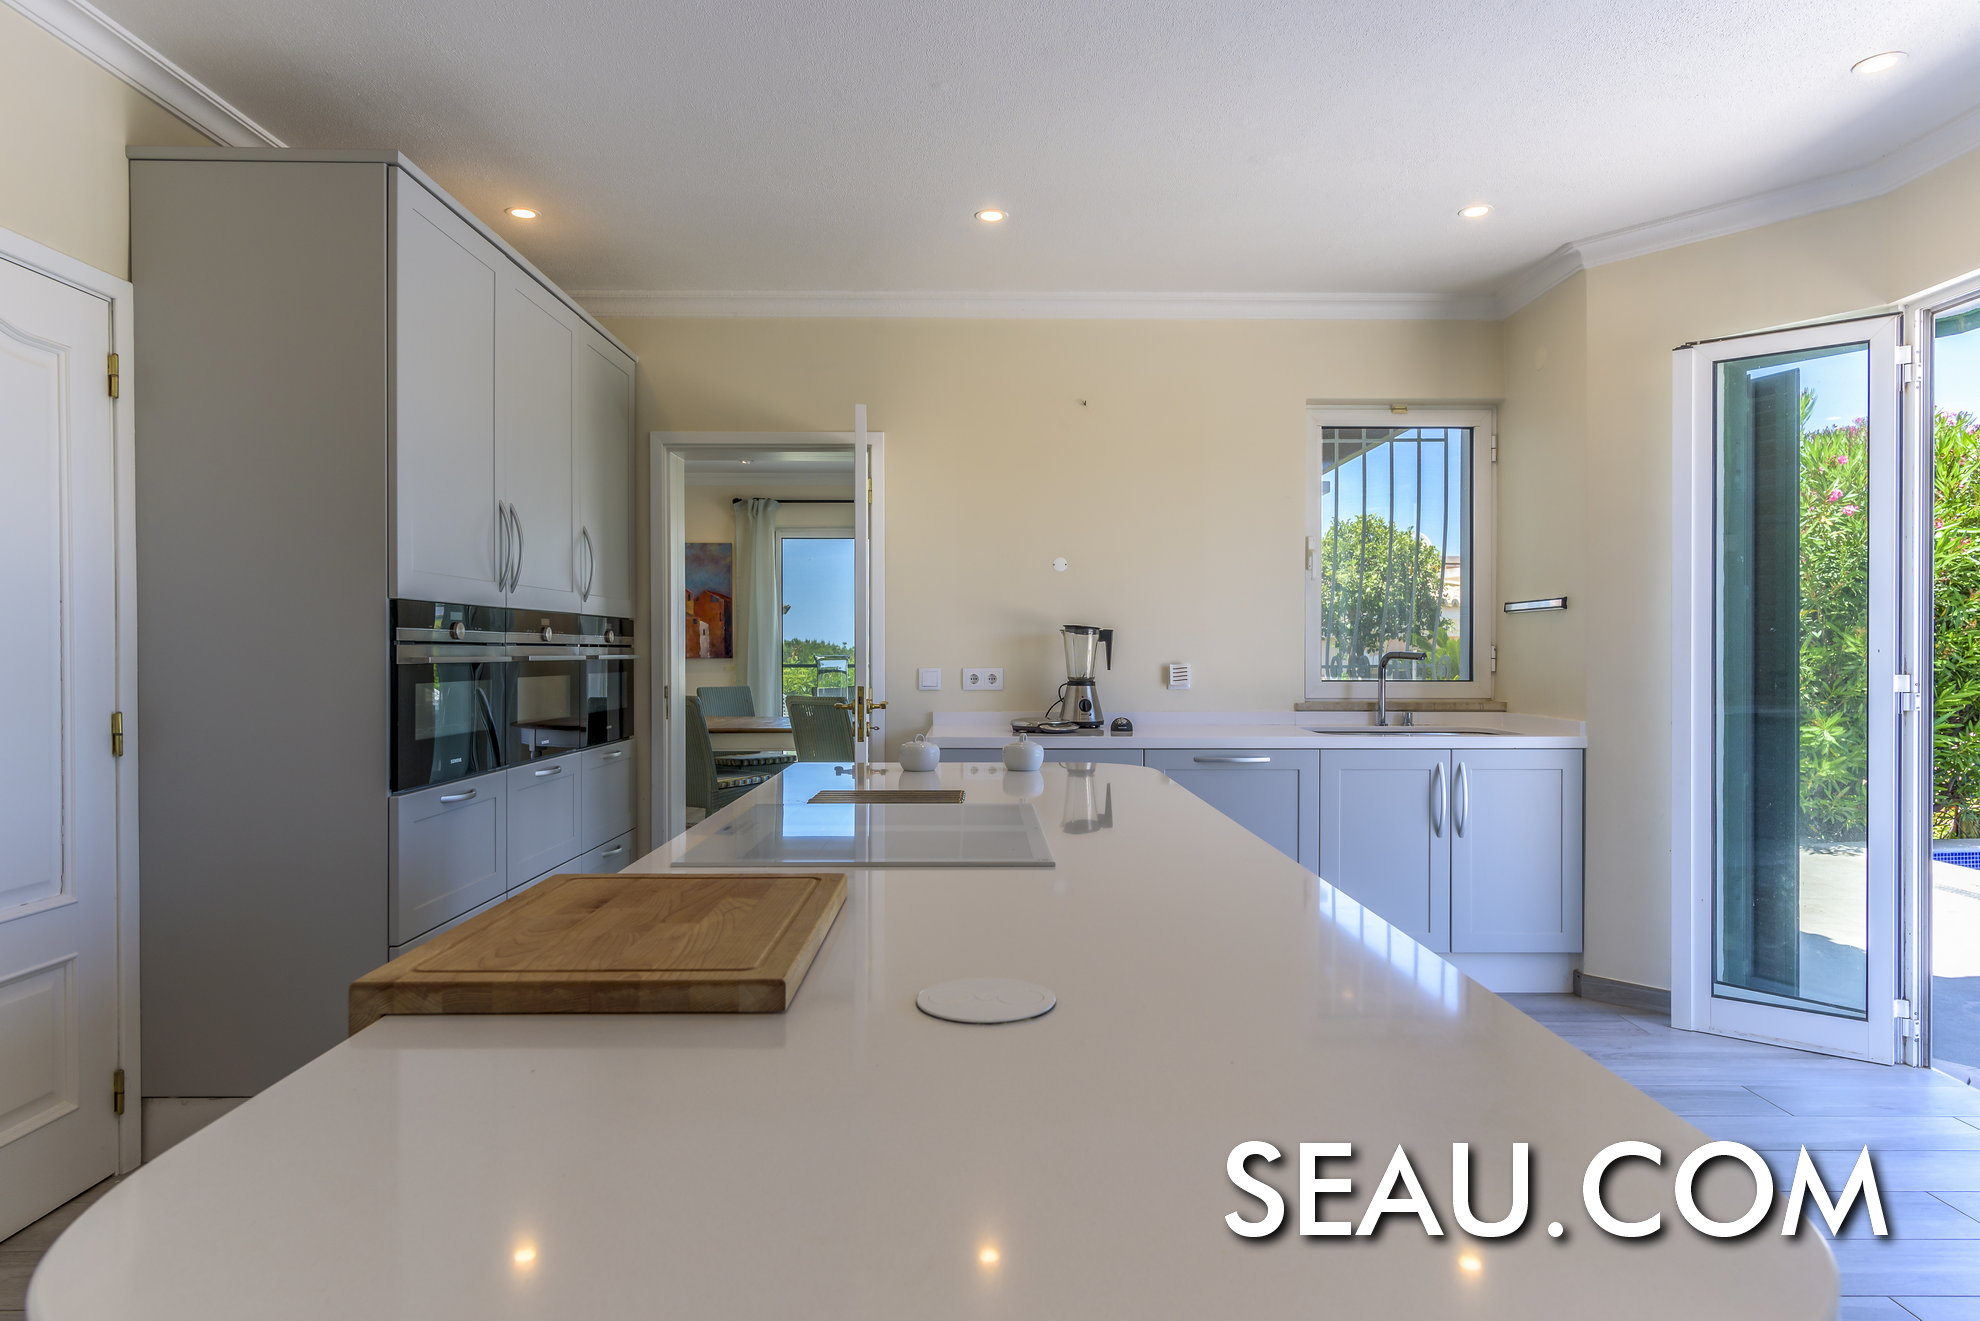 Modern kitchen with direct access to the pool and barbeque area